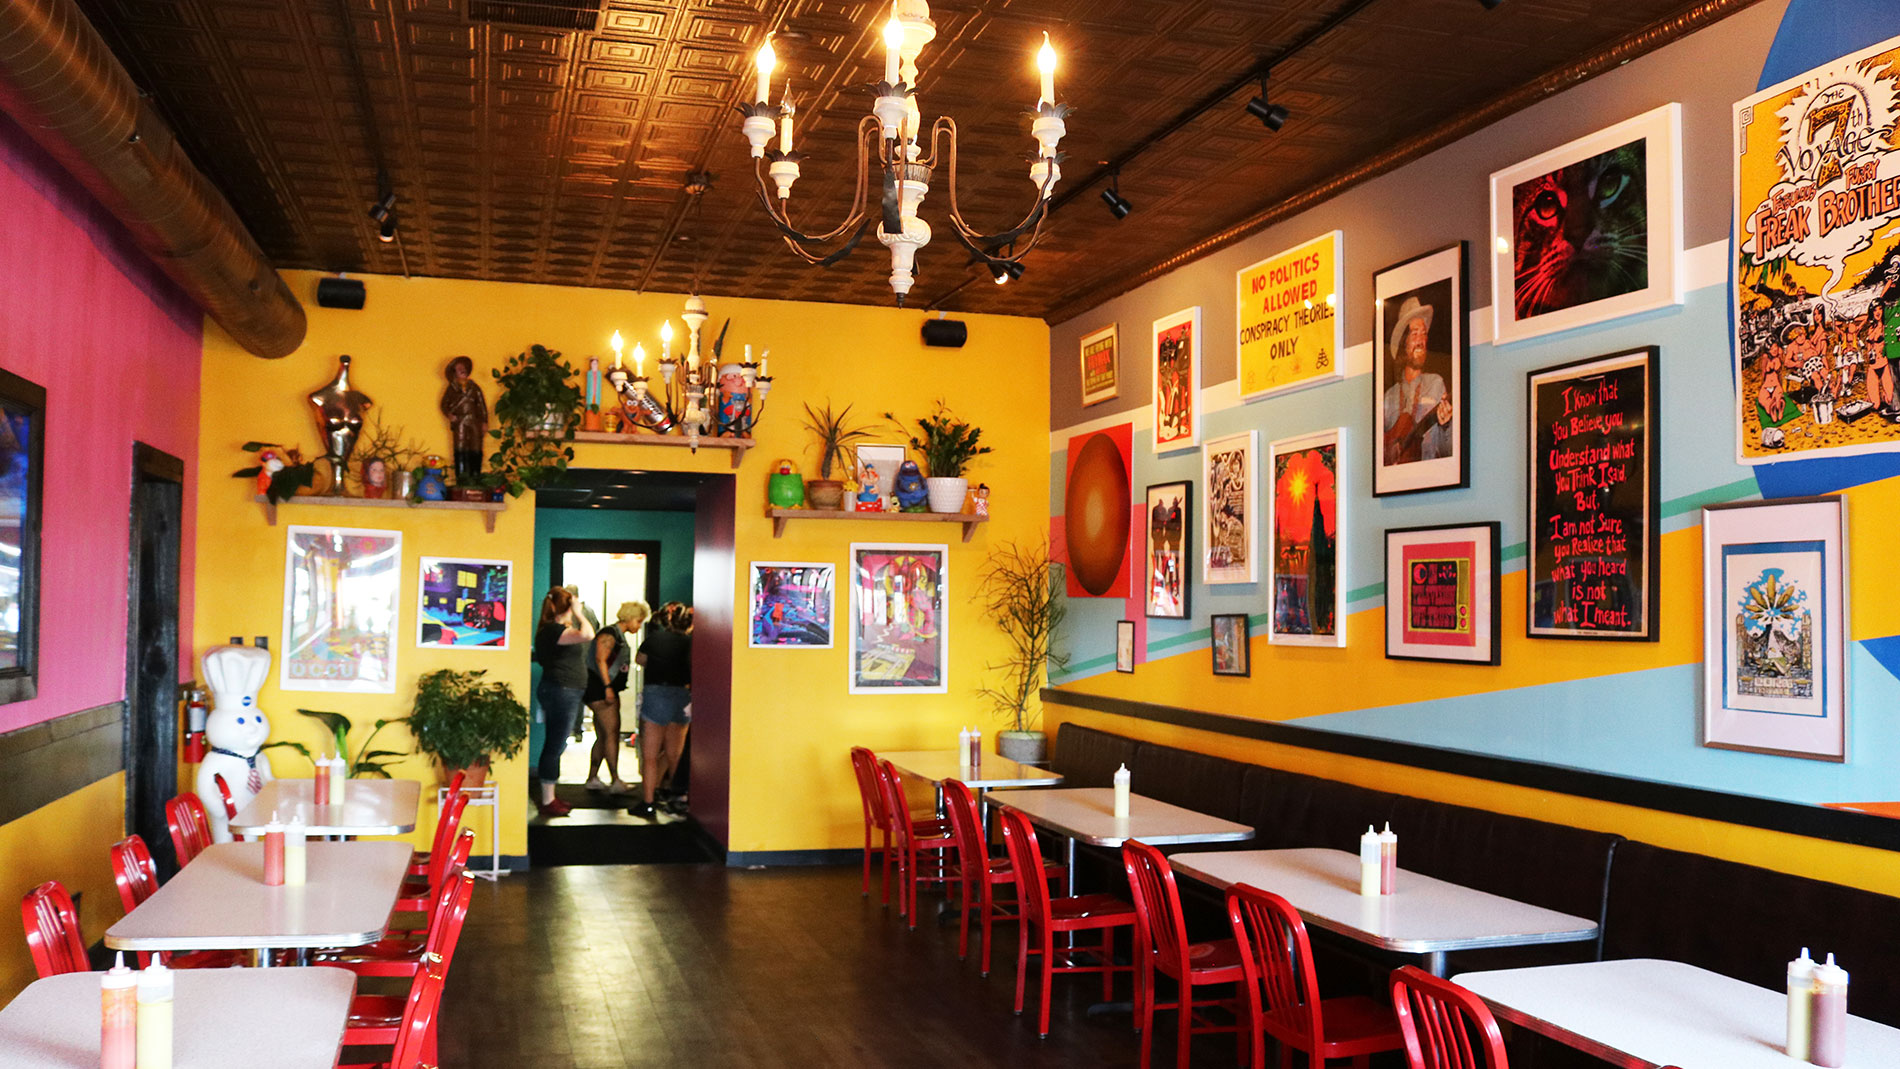 a colorful dining room in a tex-mex restaurant